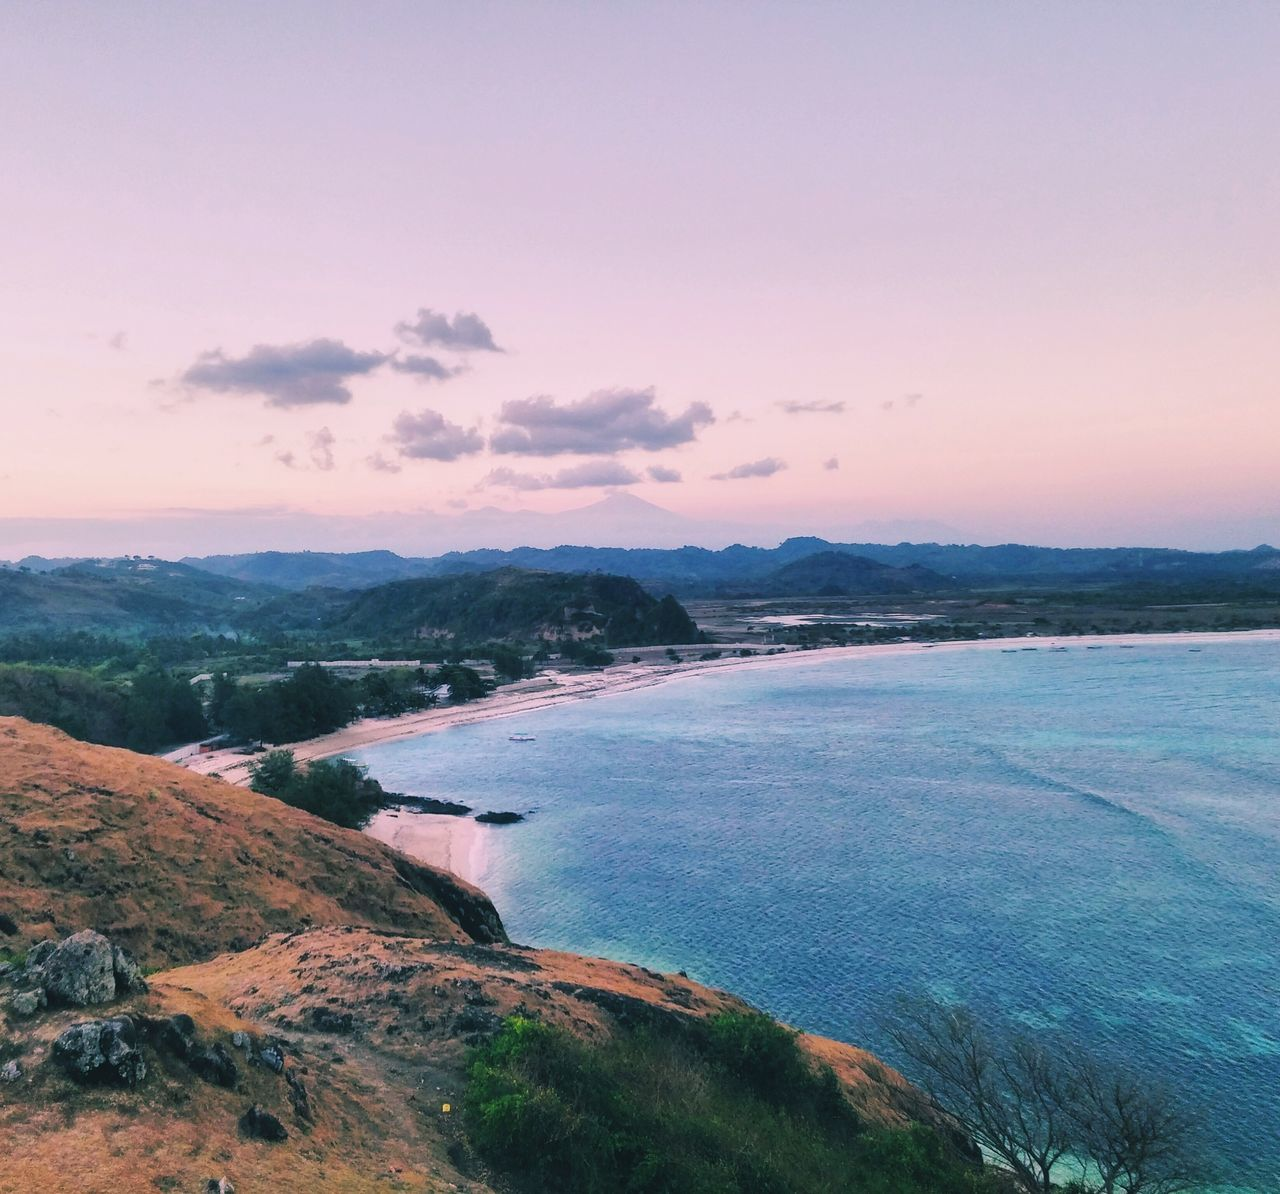 Sunset Sea Landscape Outdoors No People Beach Scenics Beauty In Nature Mountain The Great Outdoors - 2017 EyeEm Awards